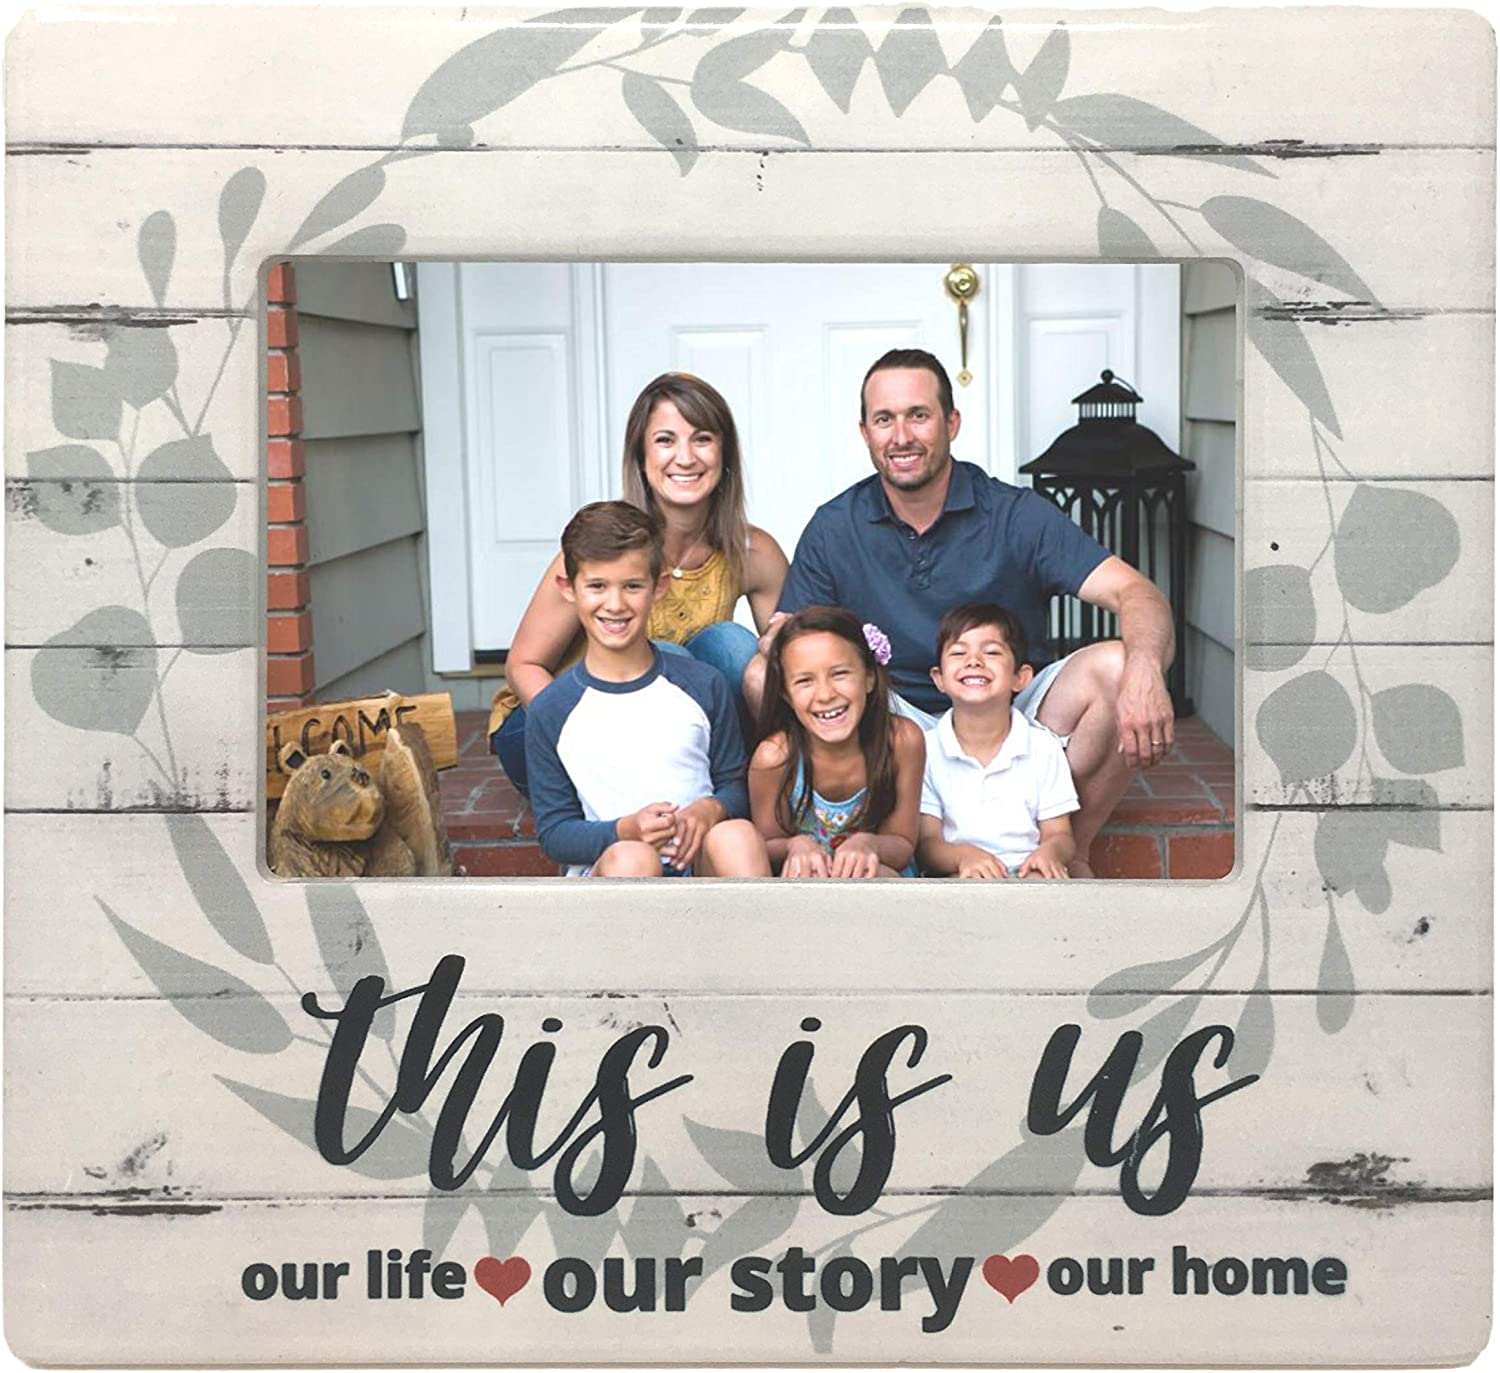 BANBERRY DESIGNS This is Us Picture Frame - Family Photo Plaque with Farmhouse Style Theme - Whitewashed Barnboard Background with Sage Green Wreath - Our Life Our Story Our Home - 4 X 6 Picture Open